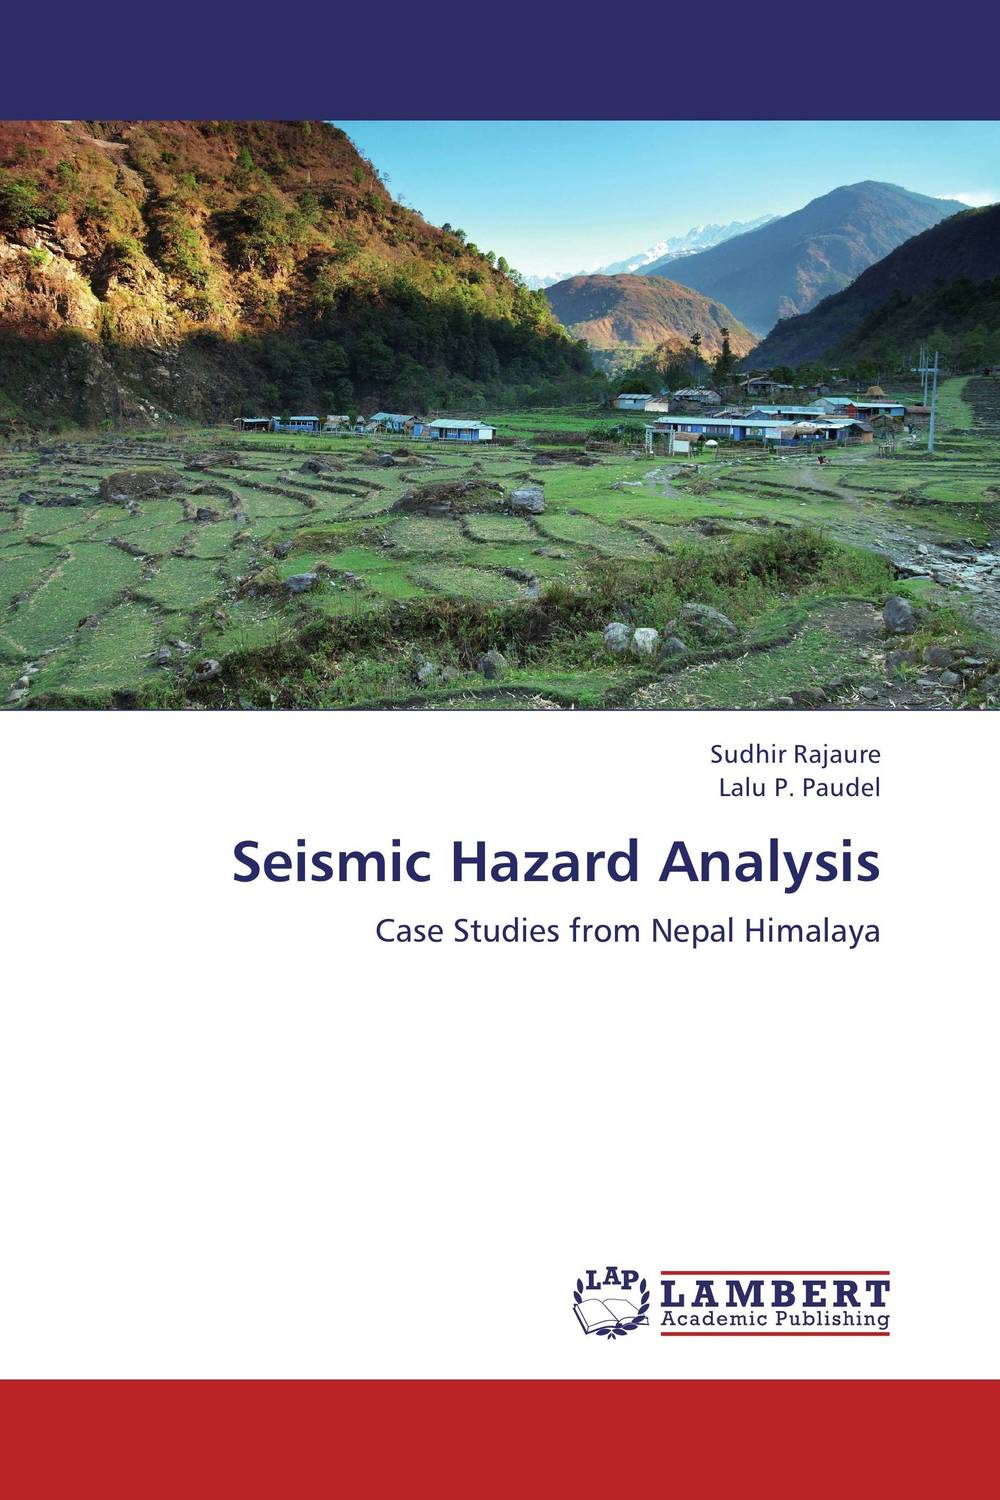 Seismic Hazard Analysis michael milimu implementation of hazard analysis critical control